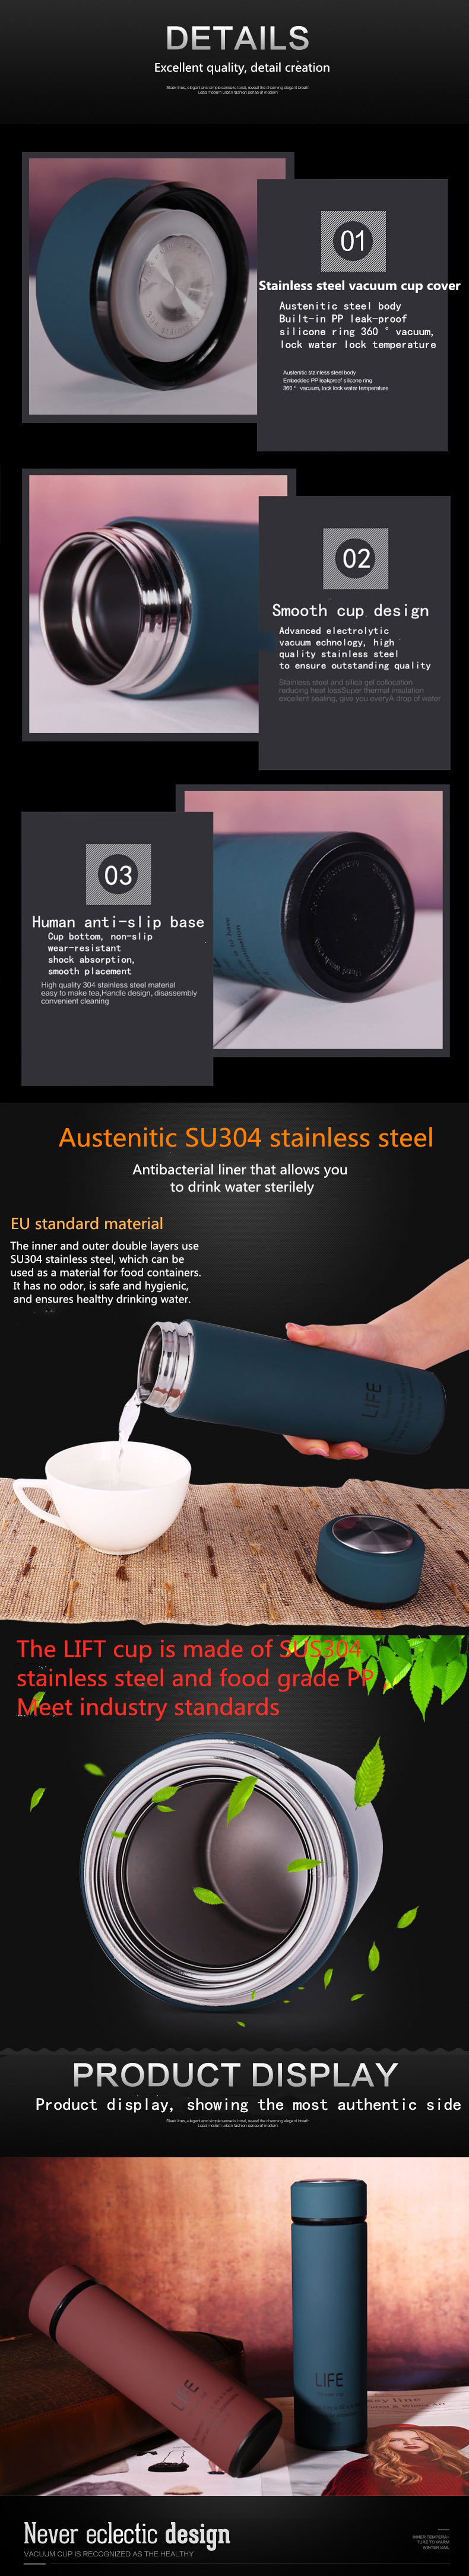 HTB1Z4qgawaH3KVjSZFjq6AFWpXa4 500ML Hot Water Thermos Tea Vacuum Flask With Filter Stainless Steel 304 Sport Thermal Cup Coffee Mug Tea Bottle Office Business